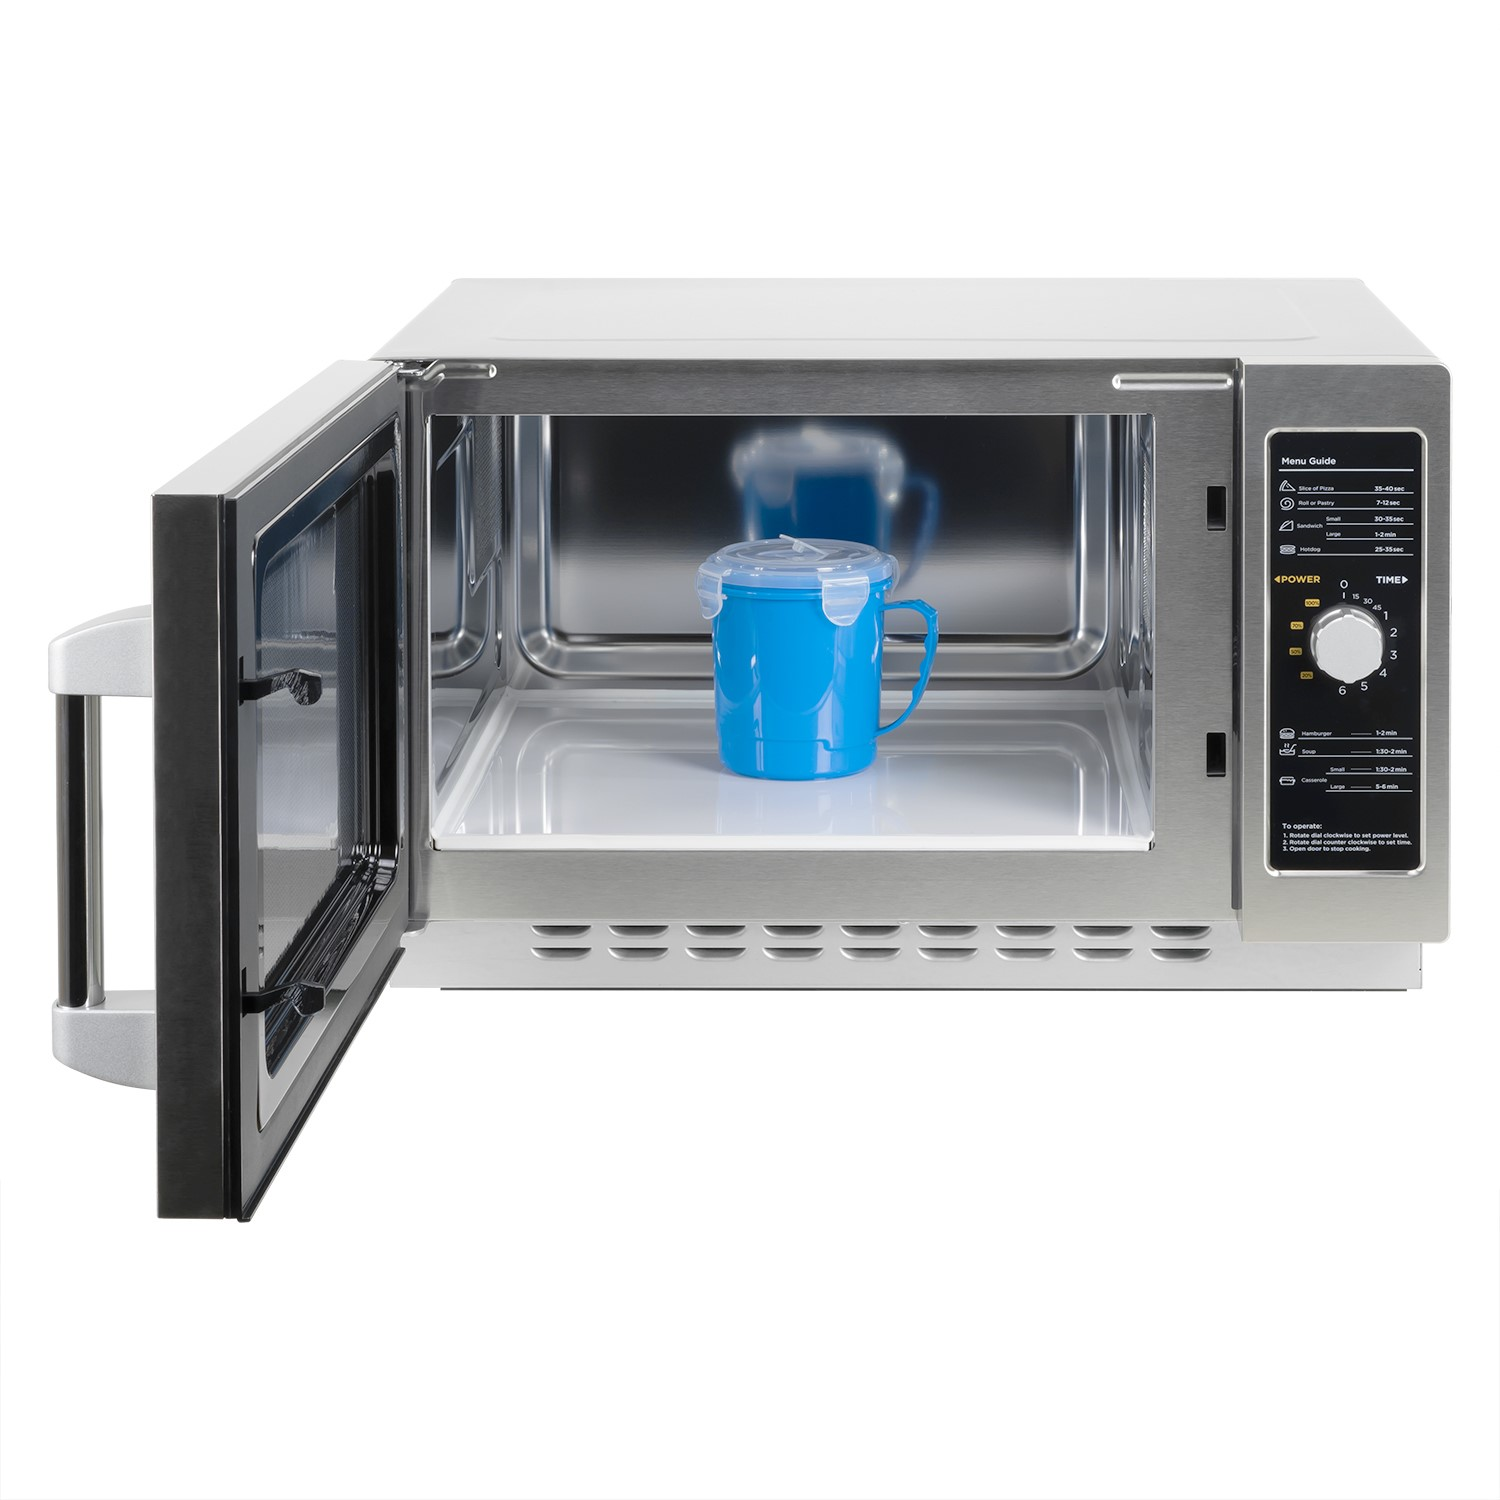 electriq 34 litre 1000w flatbed commercial heavy duty freestanding microwave in stainless steel